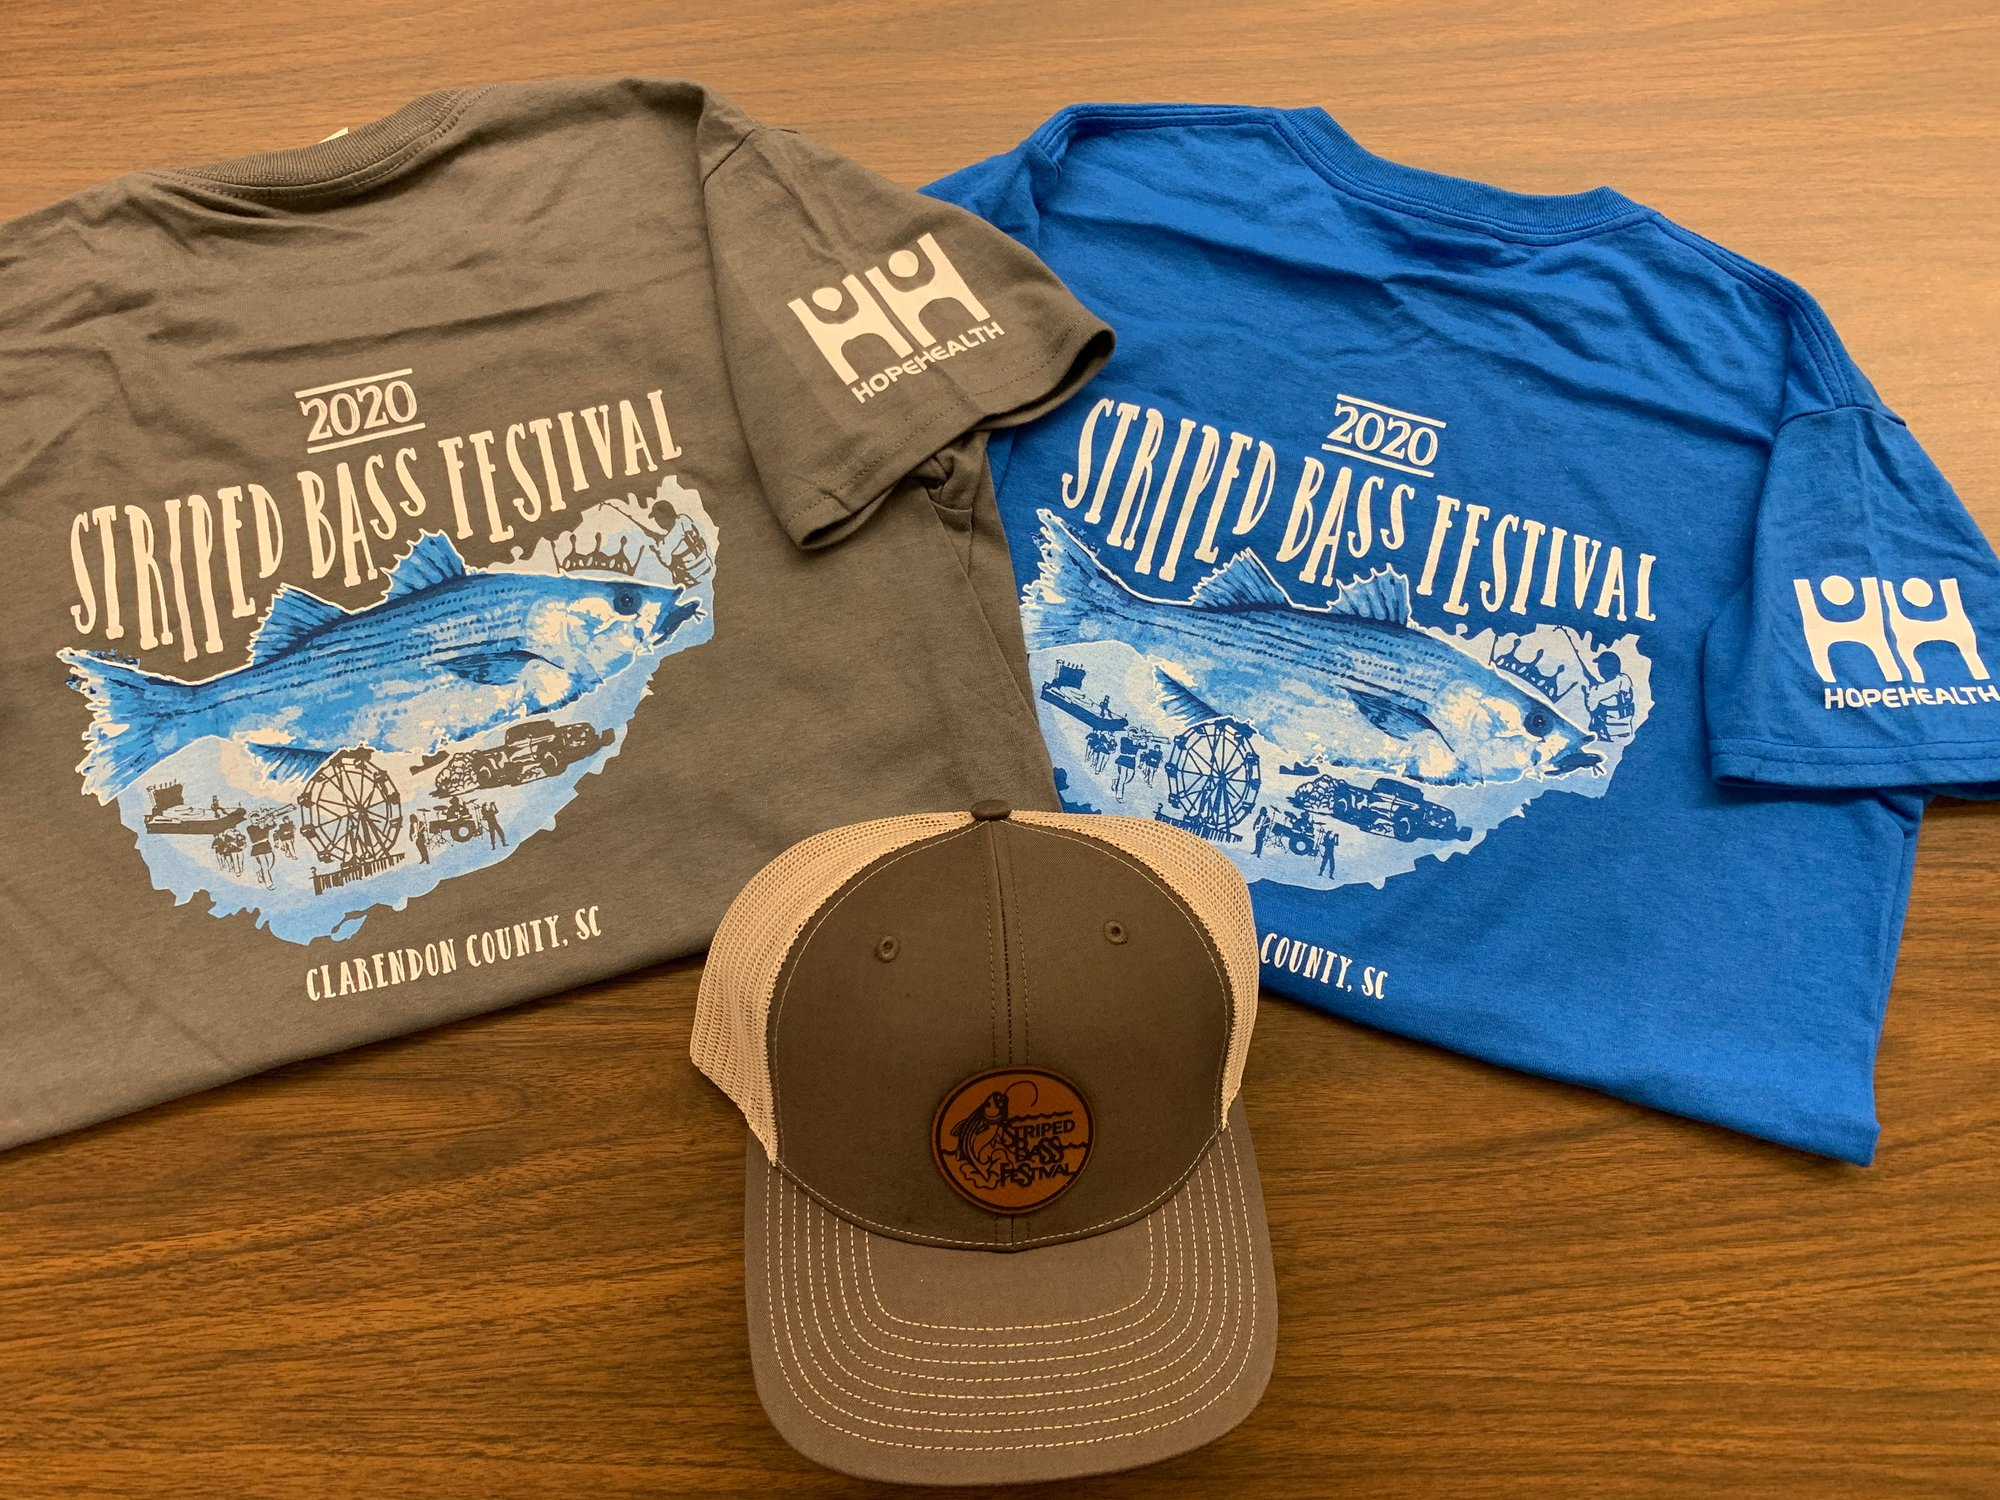 Commemorative T-shirts are being sold for the 2020 Striped Bass Festival, which was canceled because of COVID-19.